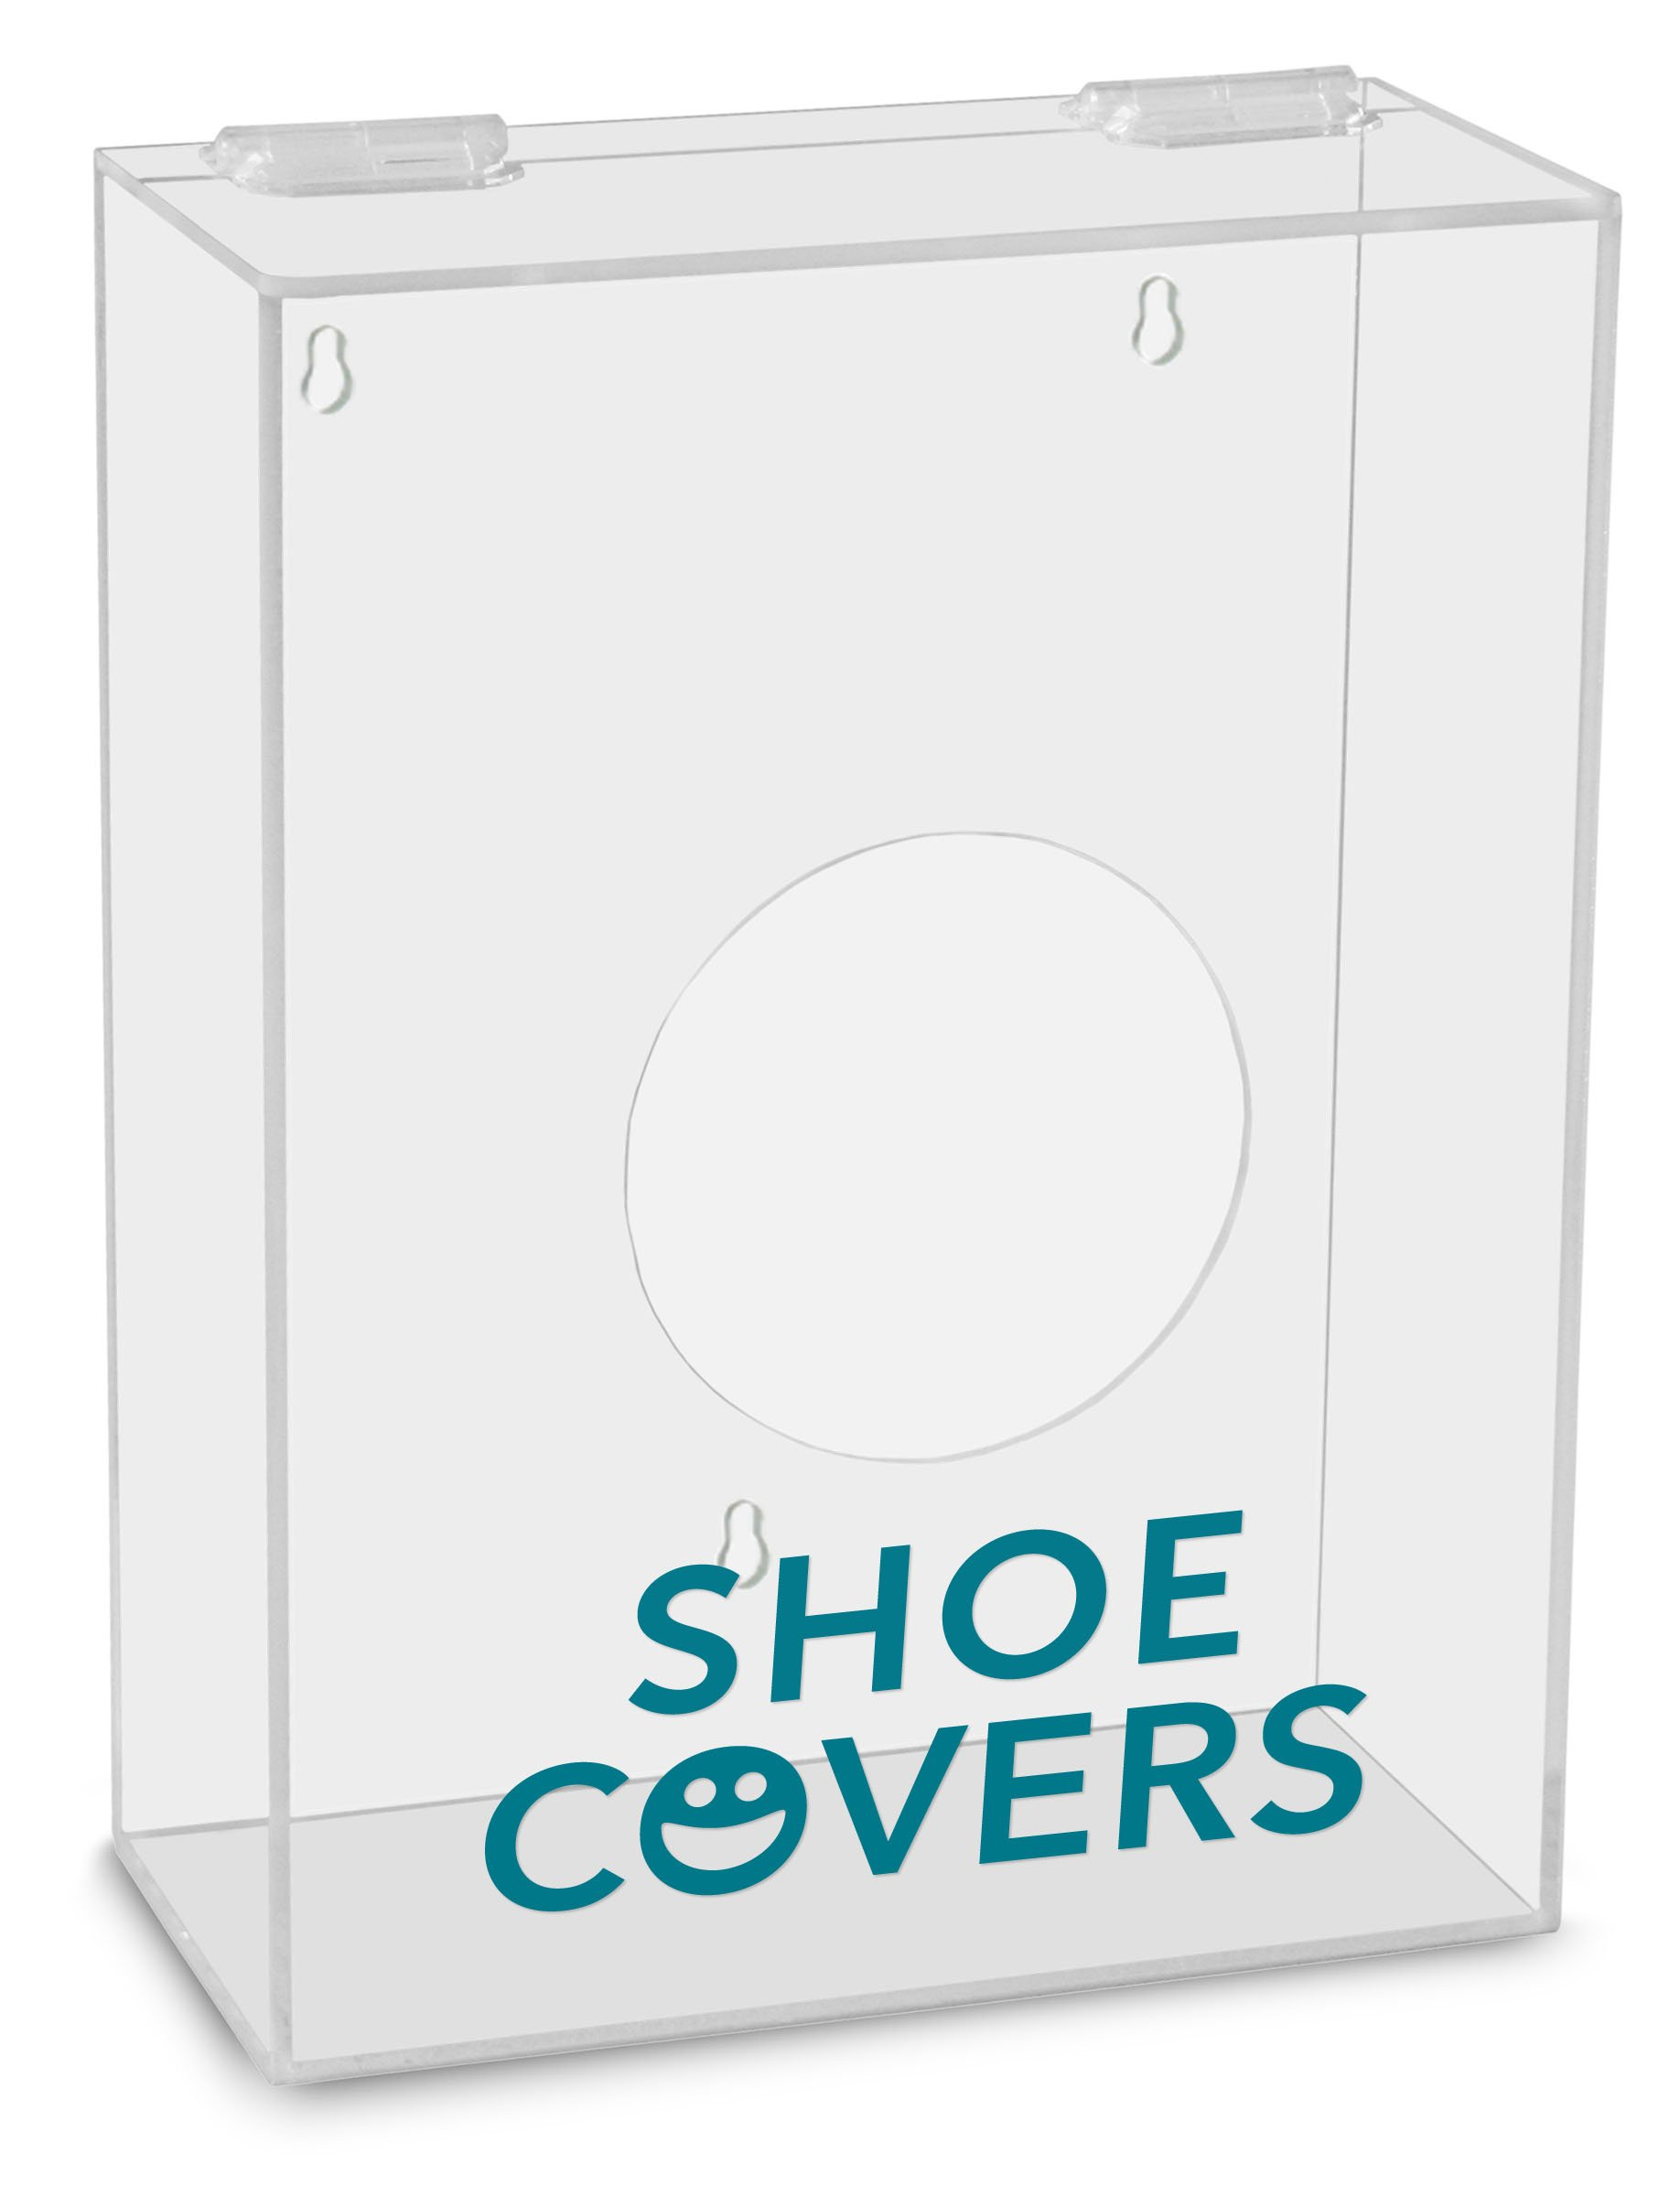 TrippNT 51316 Shoe Covers Labeled Small Apparel Dispenser, 9'' Width x 12'' Height x 4'' Depth